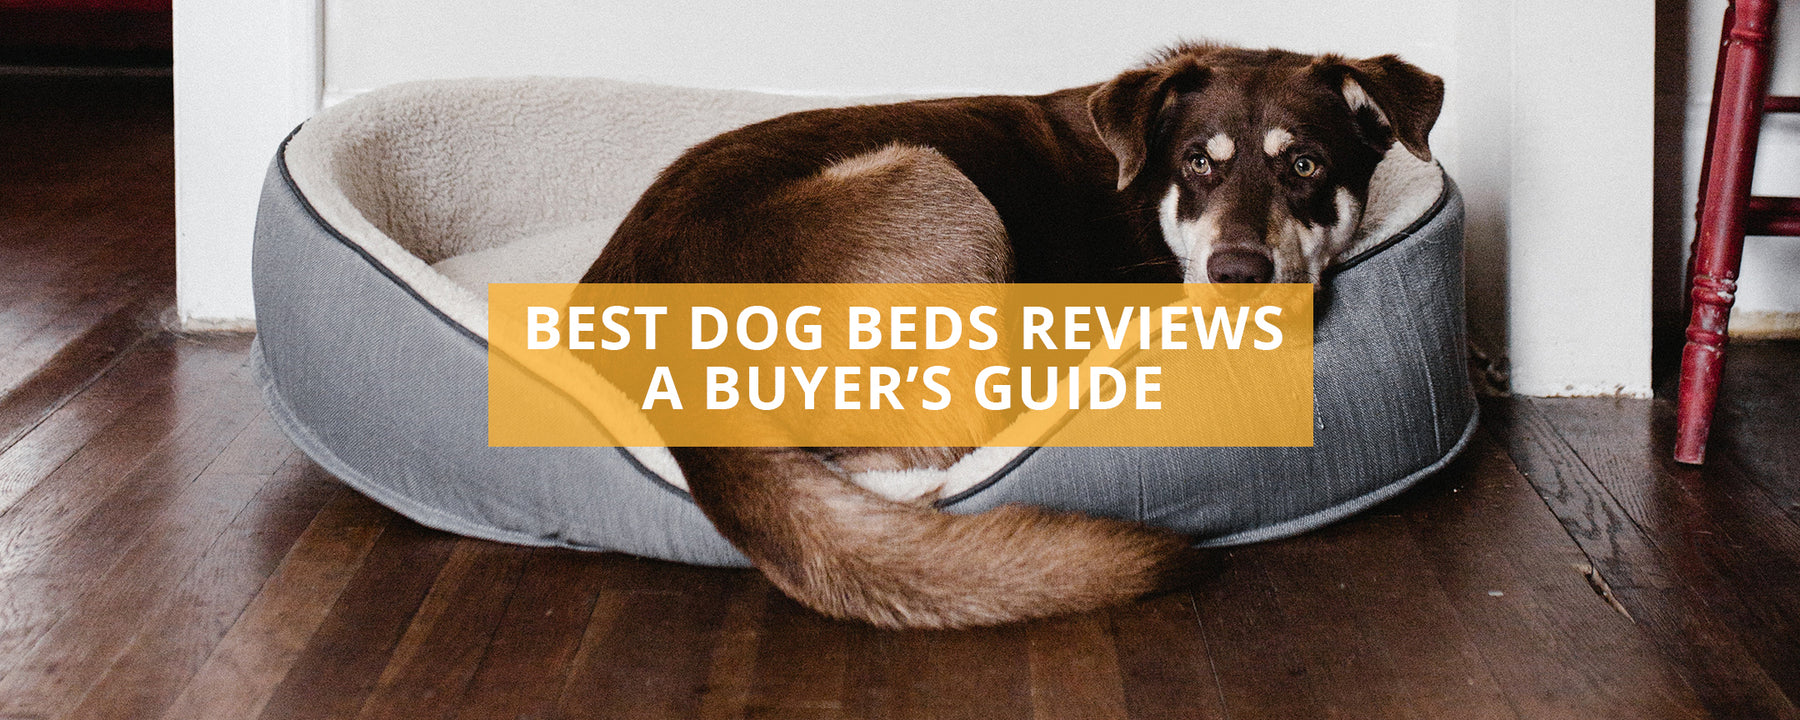 Best Dog Bed Reviews UK - A Buyer's Guide